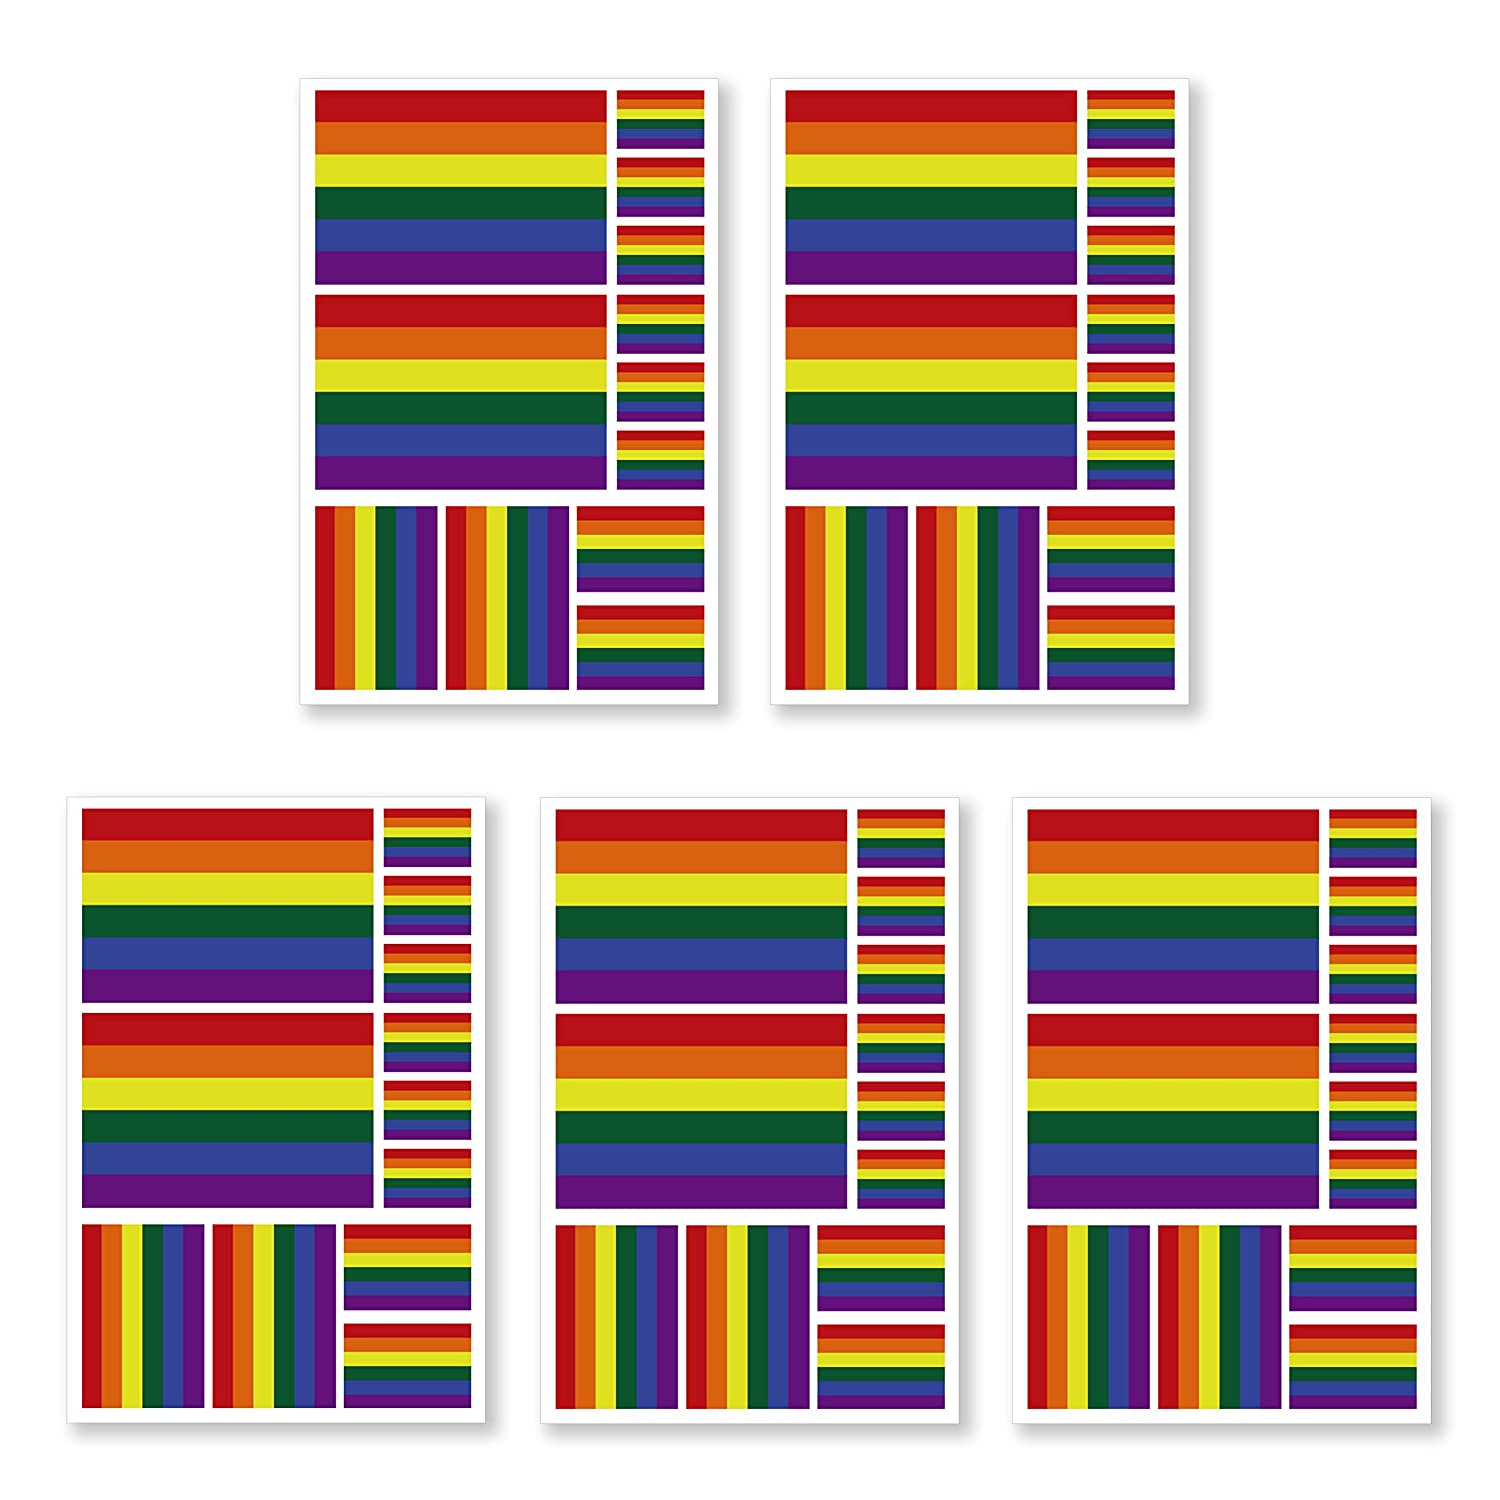 JBCD 5 Pcs Rainbow Flag Tattoos LGBT Flag Stickers Face Tattoos, Gay Pride Tattoos Temporary Decorations Suitable for Sports Event and Party